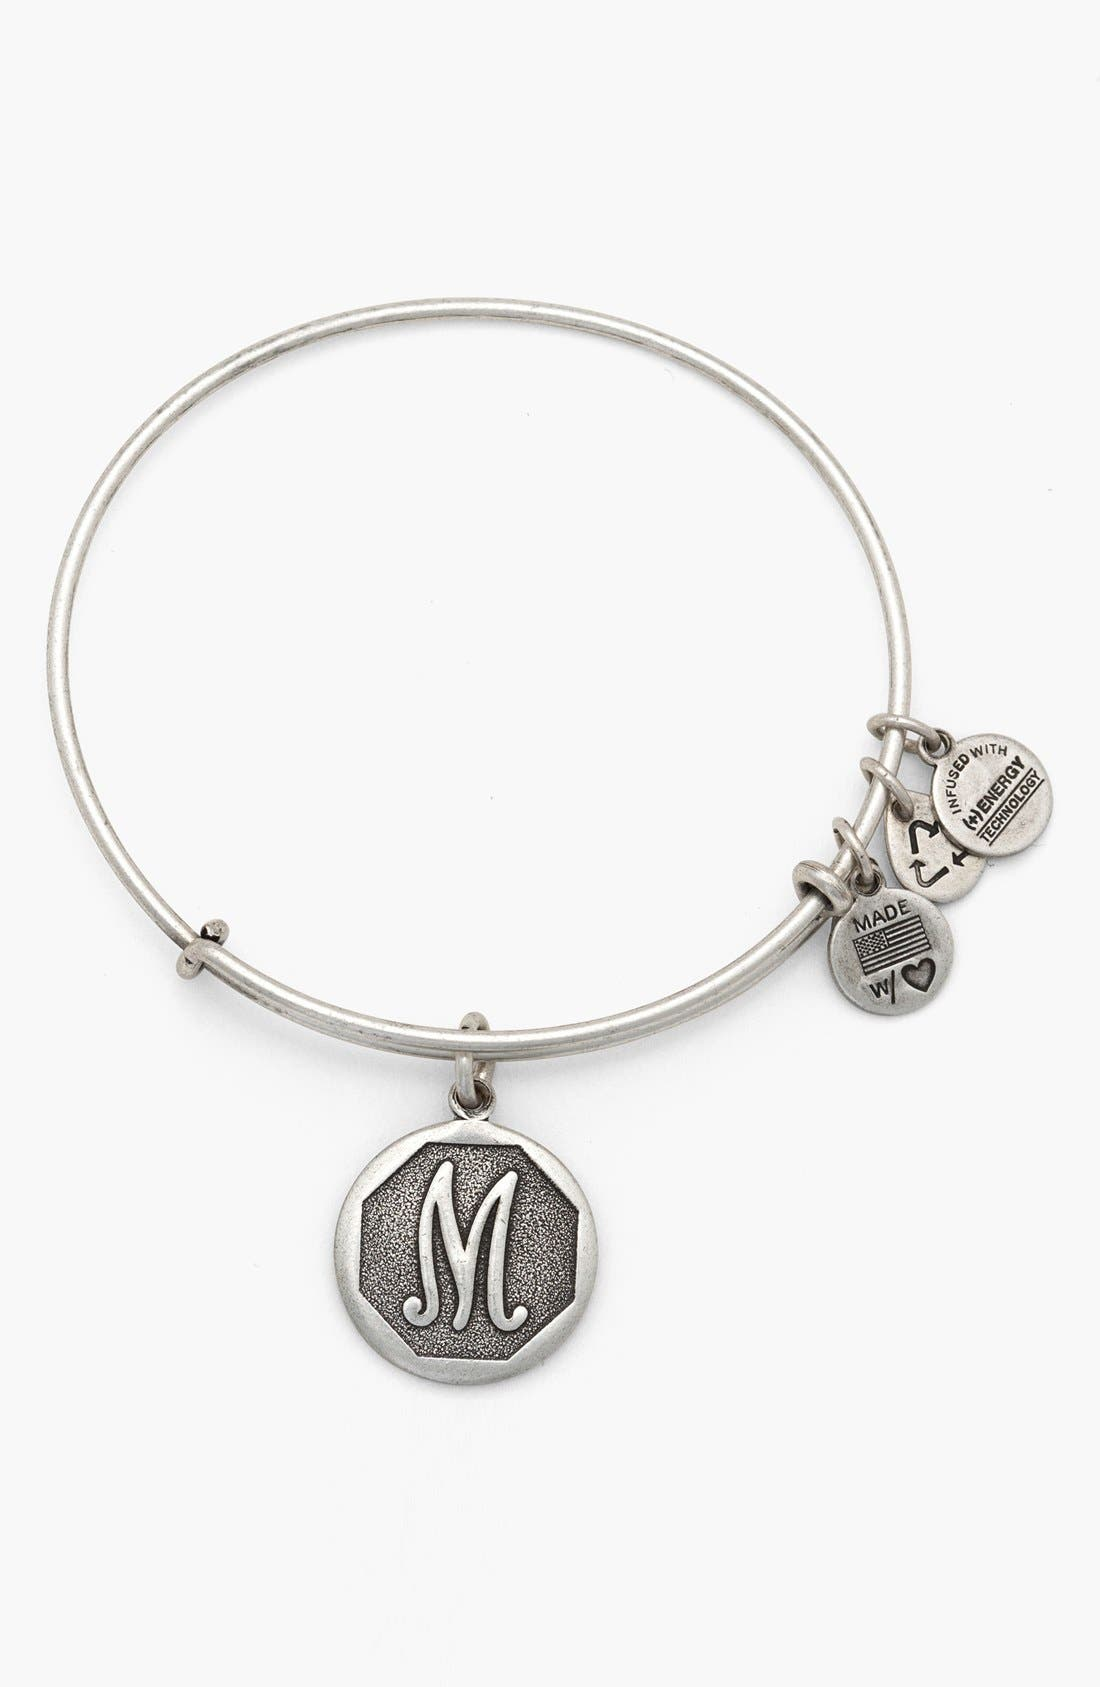 ALEX AND ANI Initial Adjustable Wire Bangle